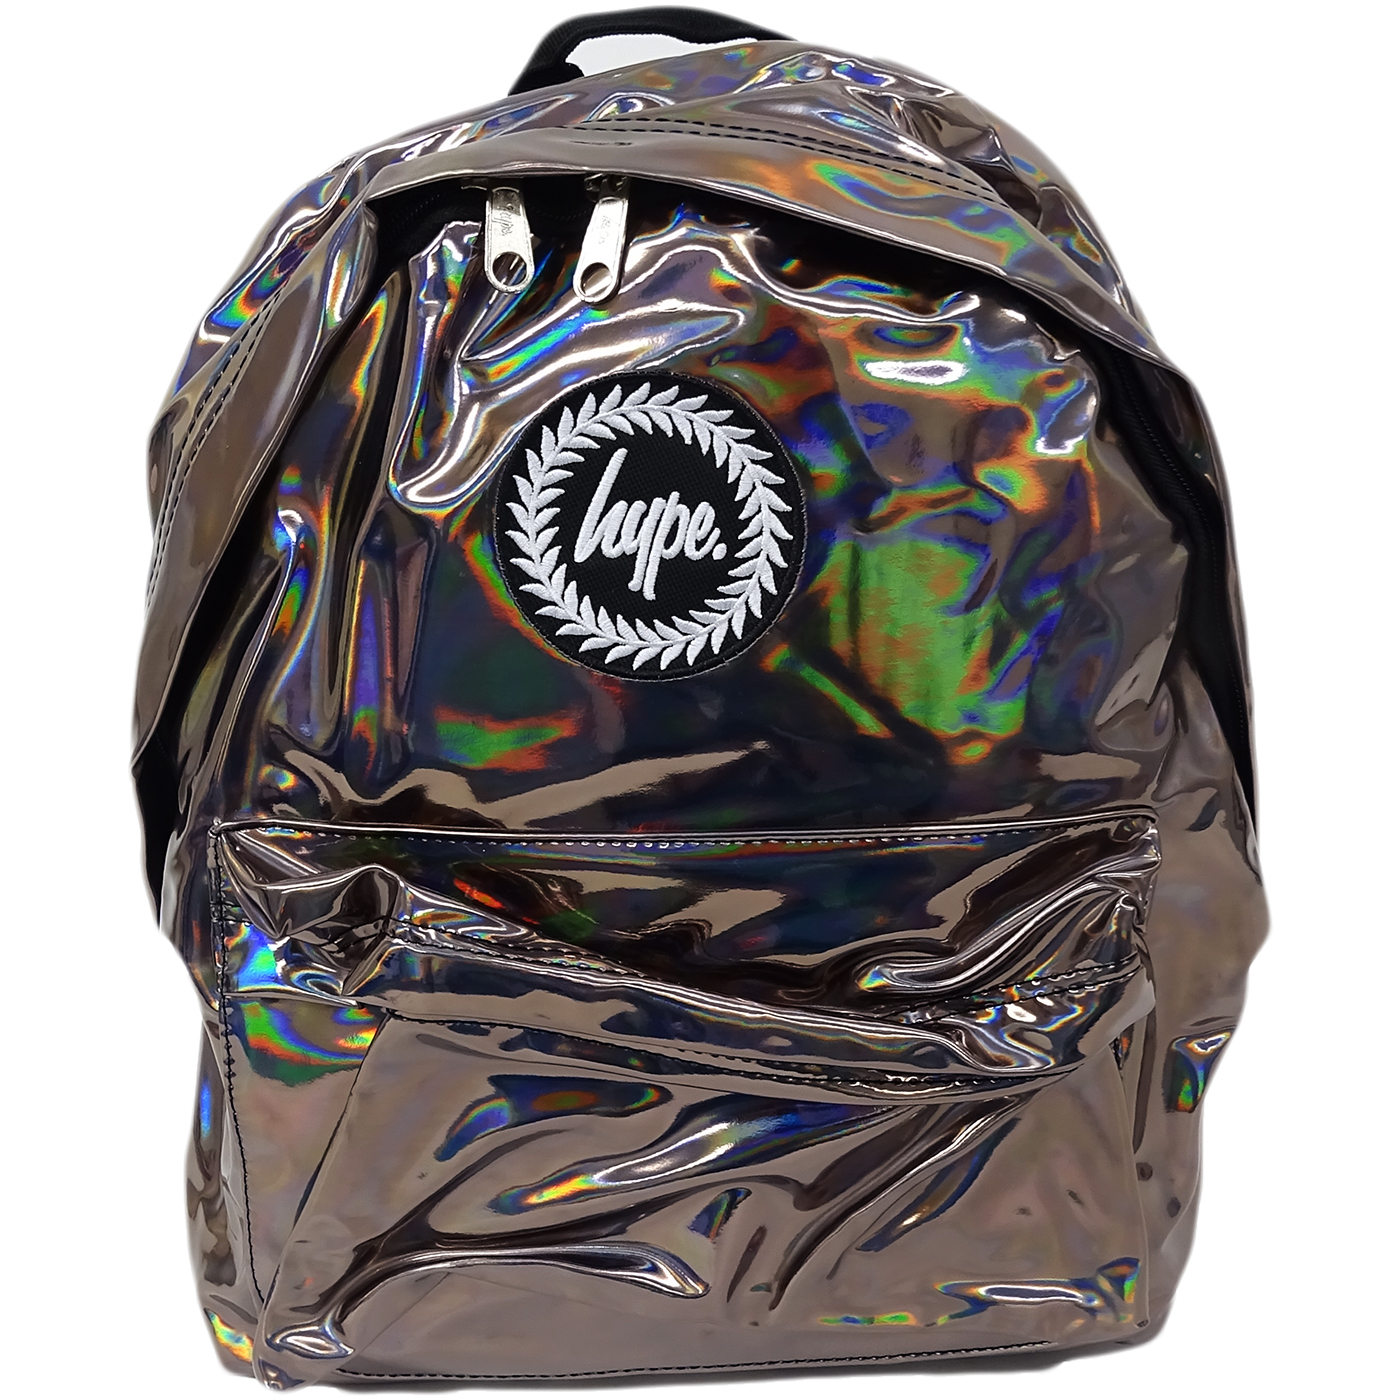 aacfea4c28fc Sentinel Hype Coffee Bag   Rucksack   Backpack Bag - Holographic - NEW